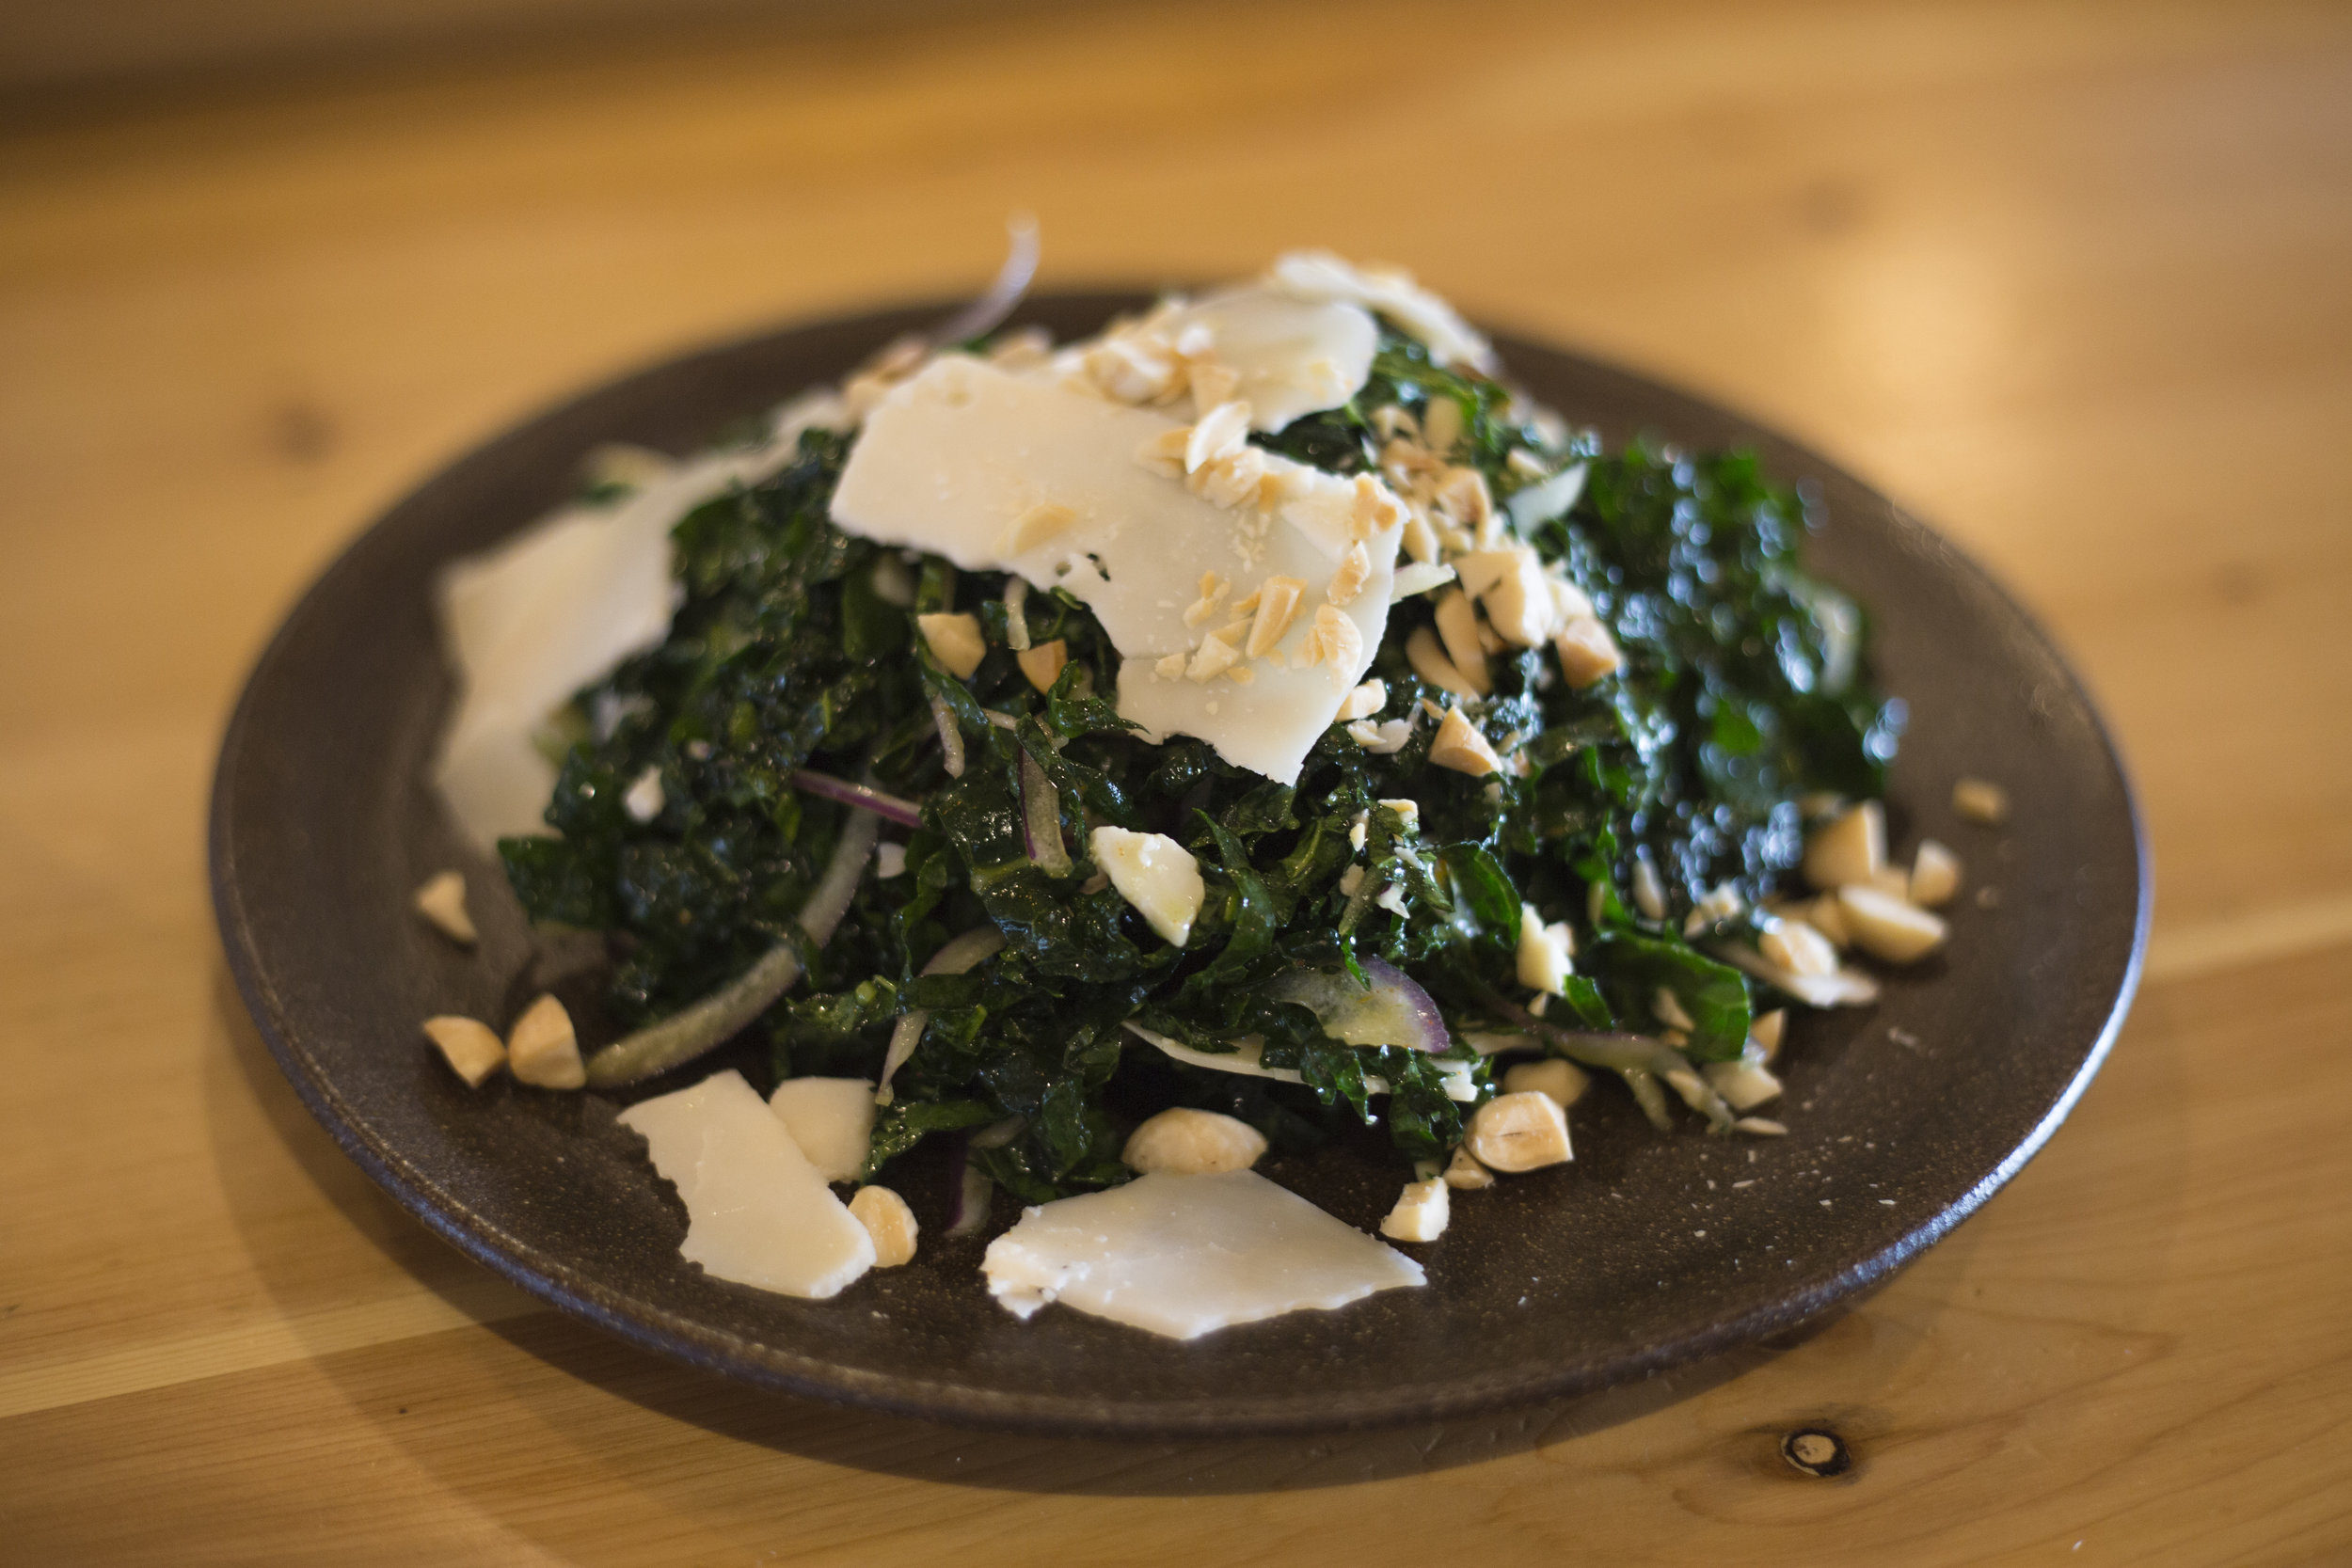 The seasonal kale salad is one of the most popular dishes at Selden Standard in Midtown.